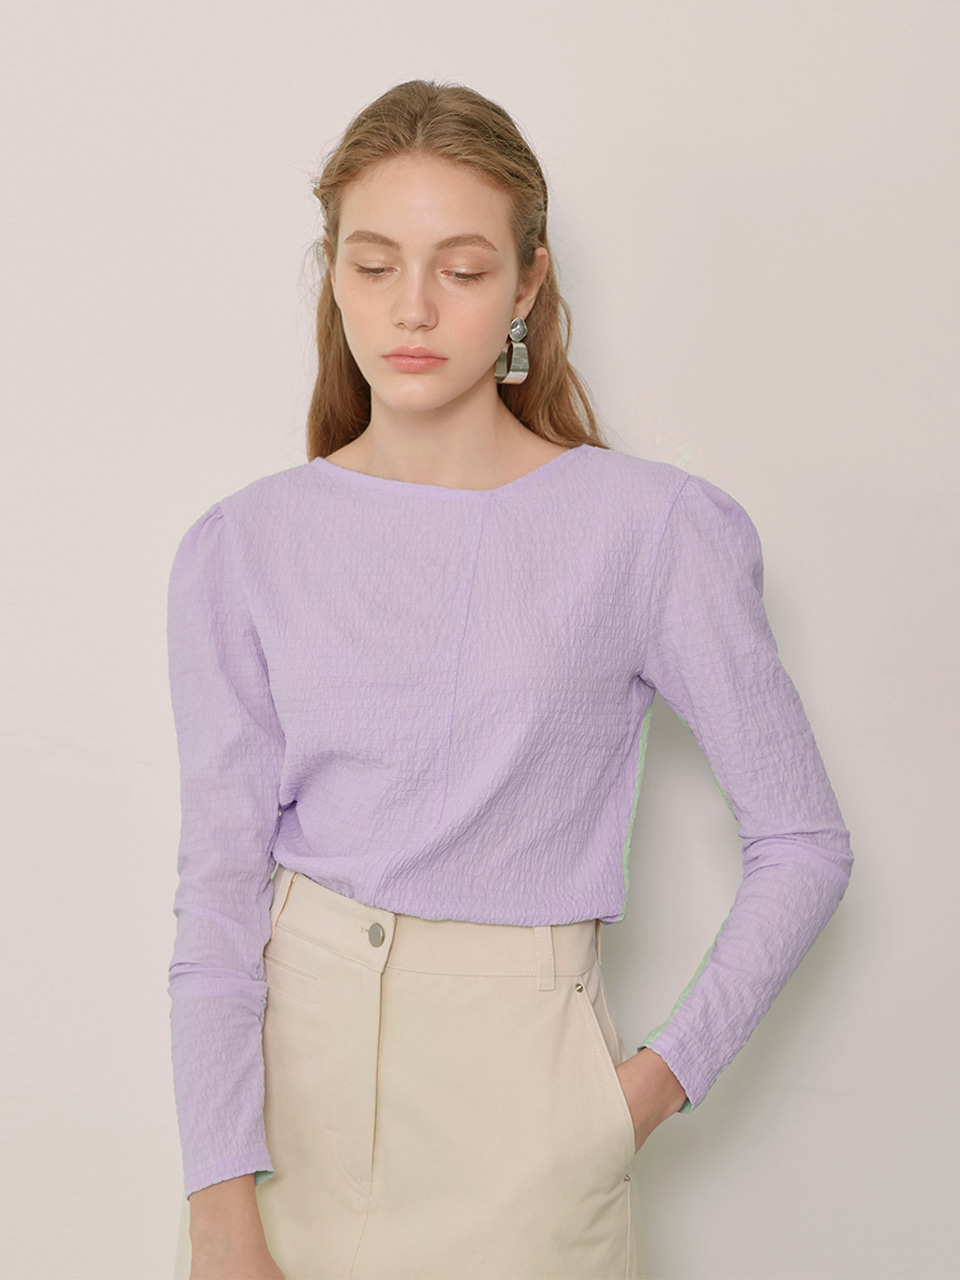 DARIA_Unblanced Neck Blouse_Lavender